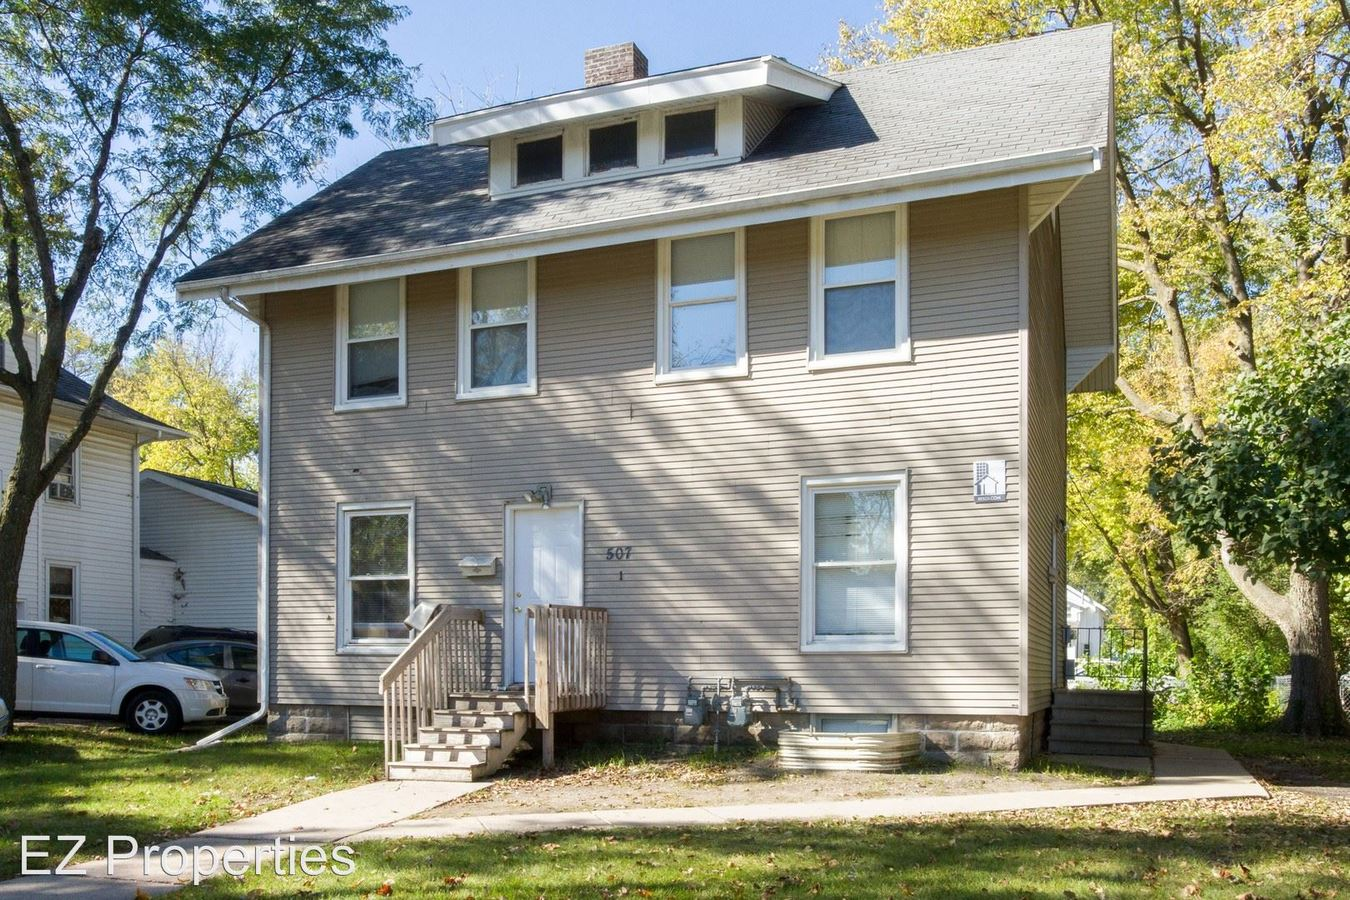 3 Bedrooms 1 Bathroom Apartment for rent at 507 Welch Ave in Ames, IA